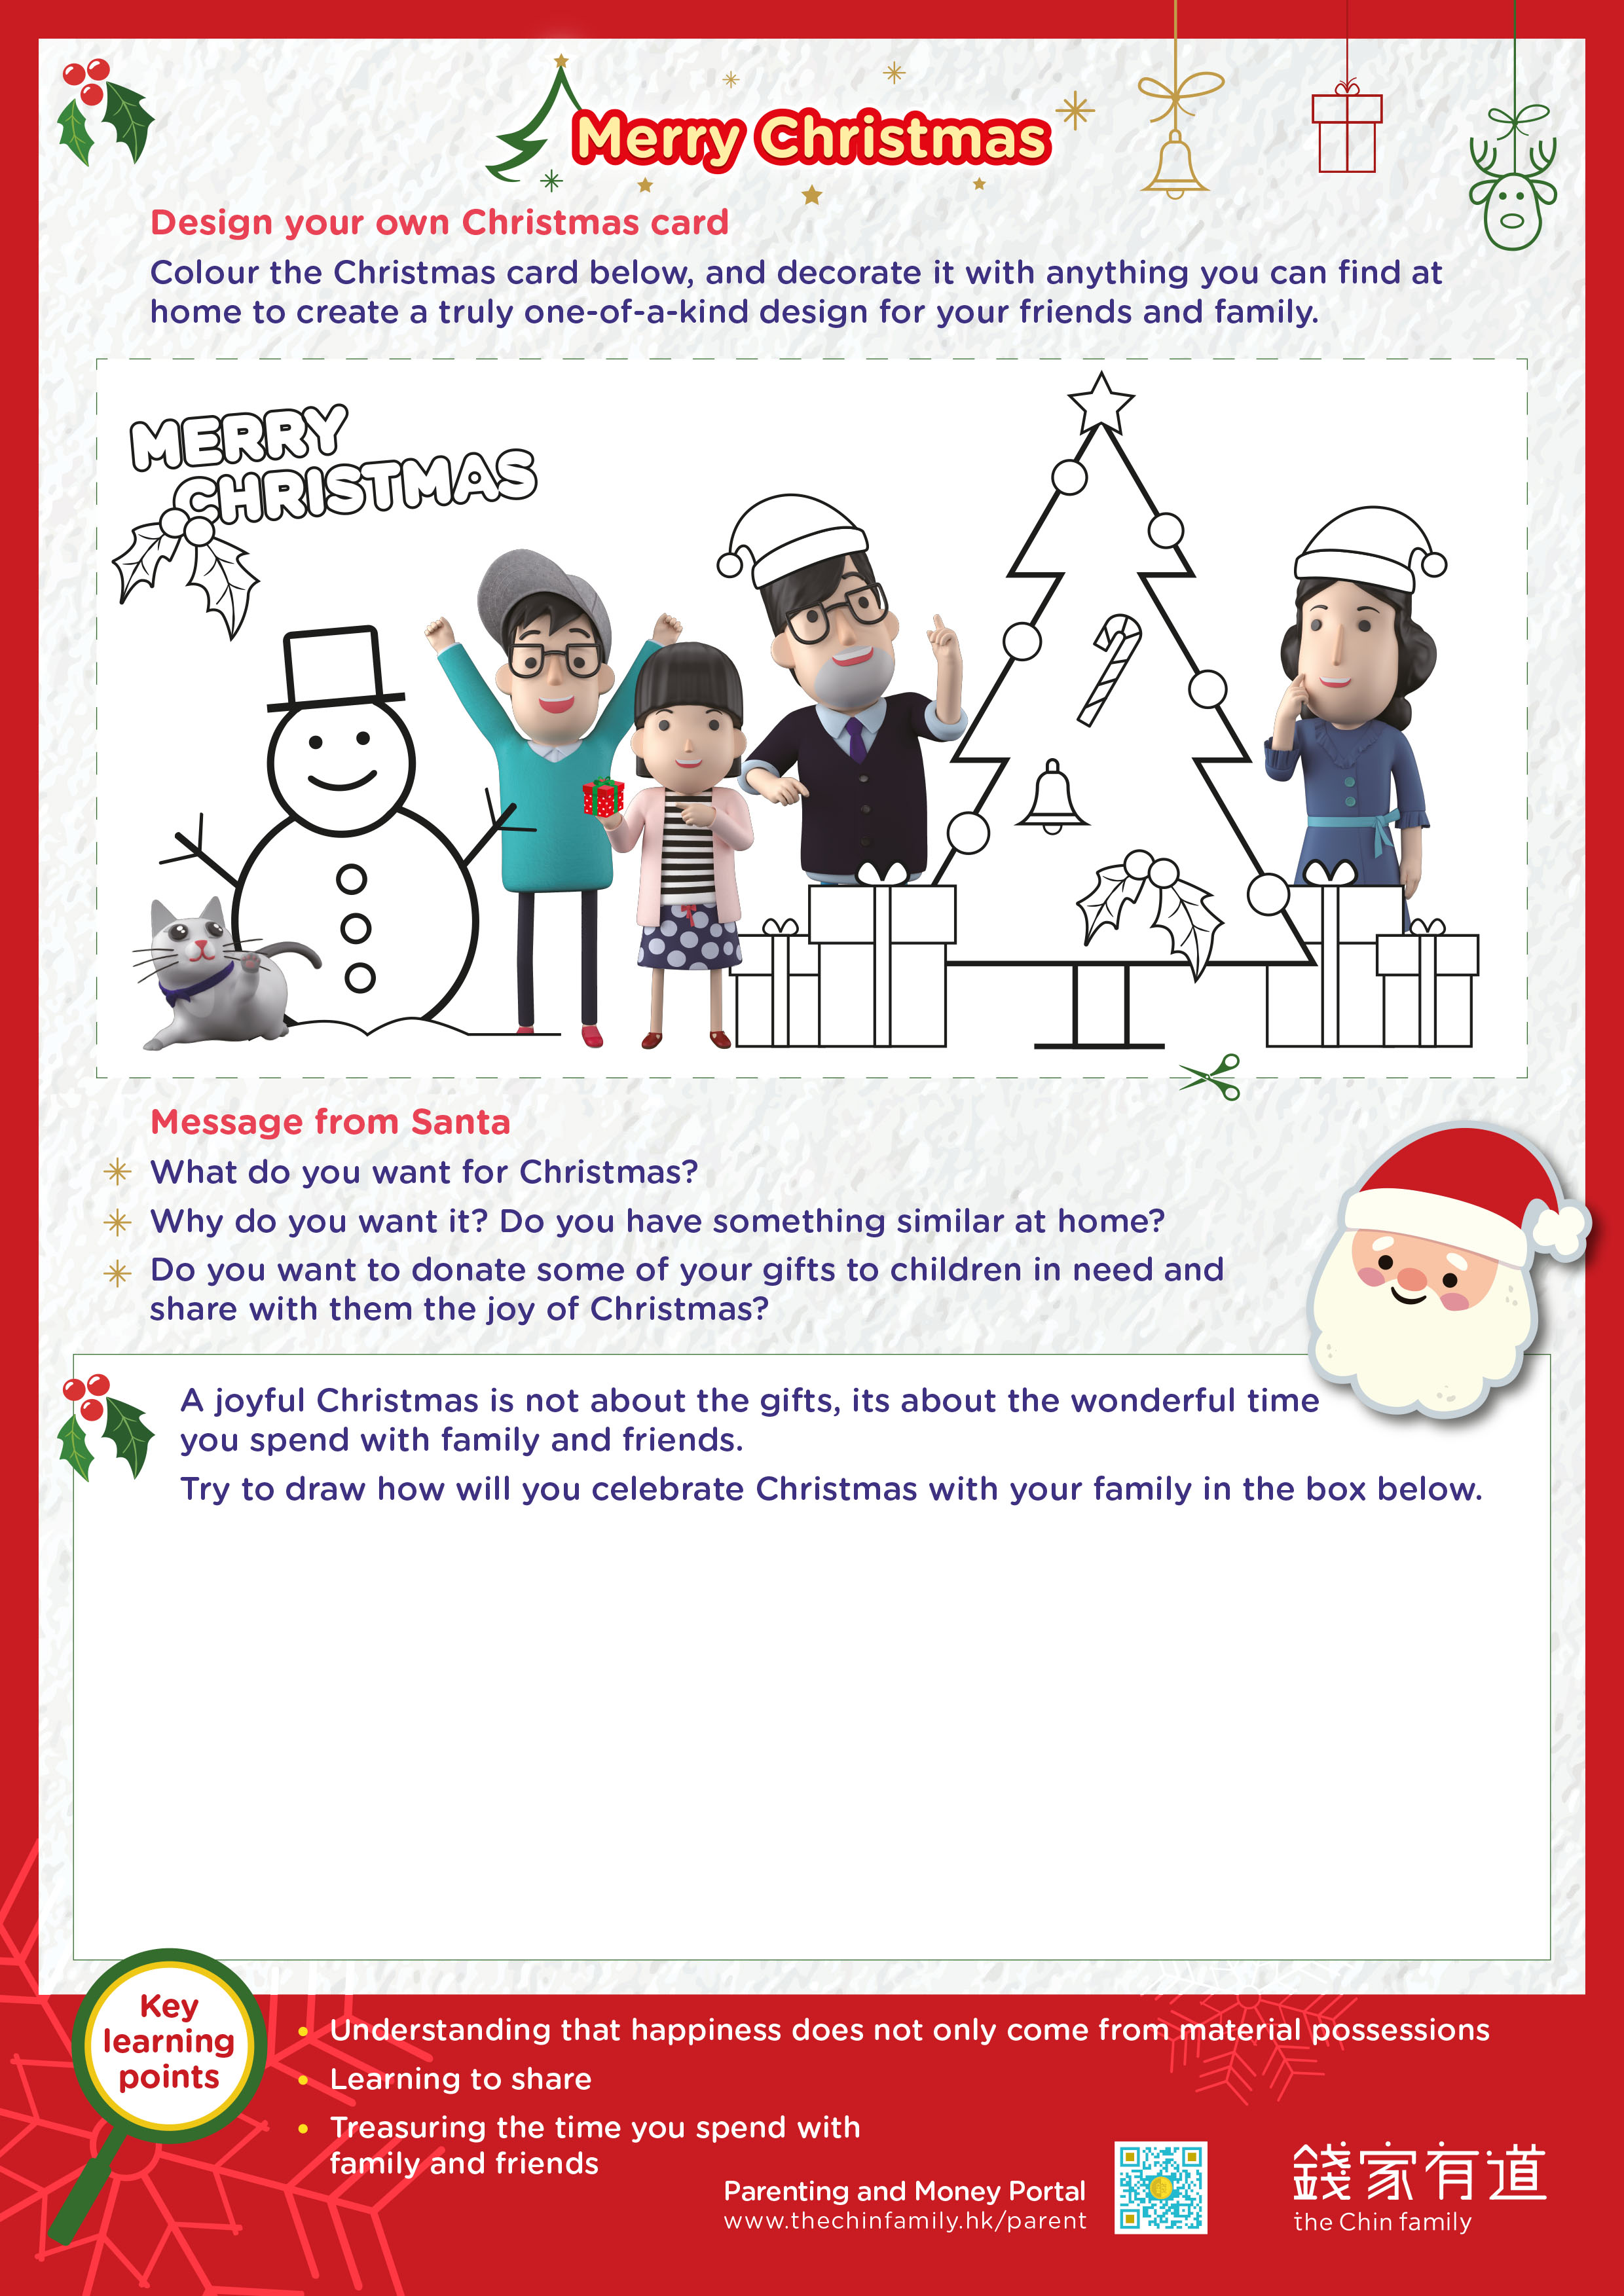 design your own christmas card[aged 6-11]图片